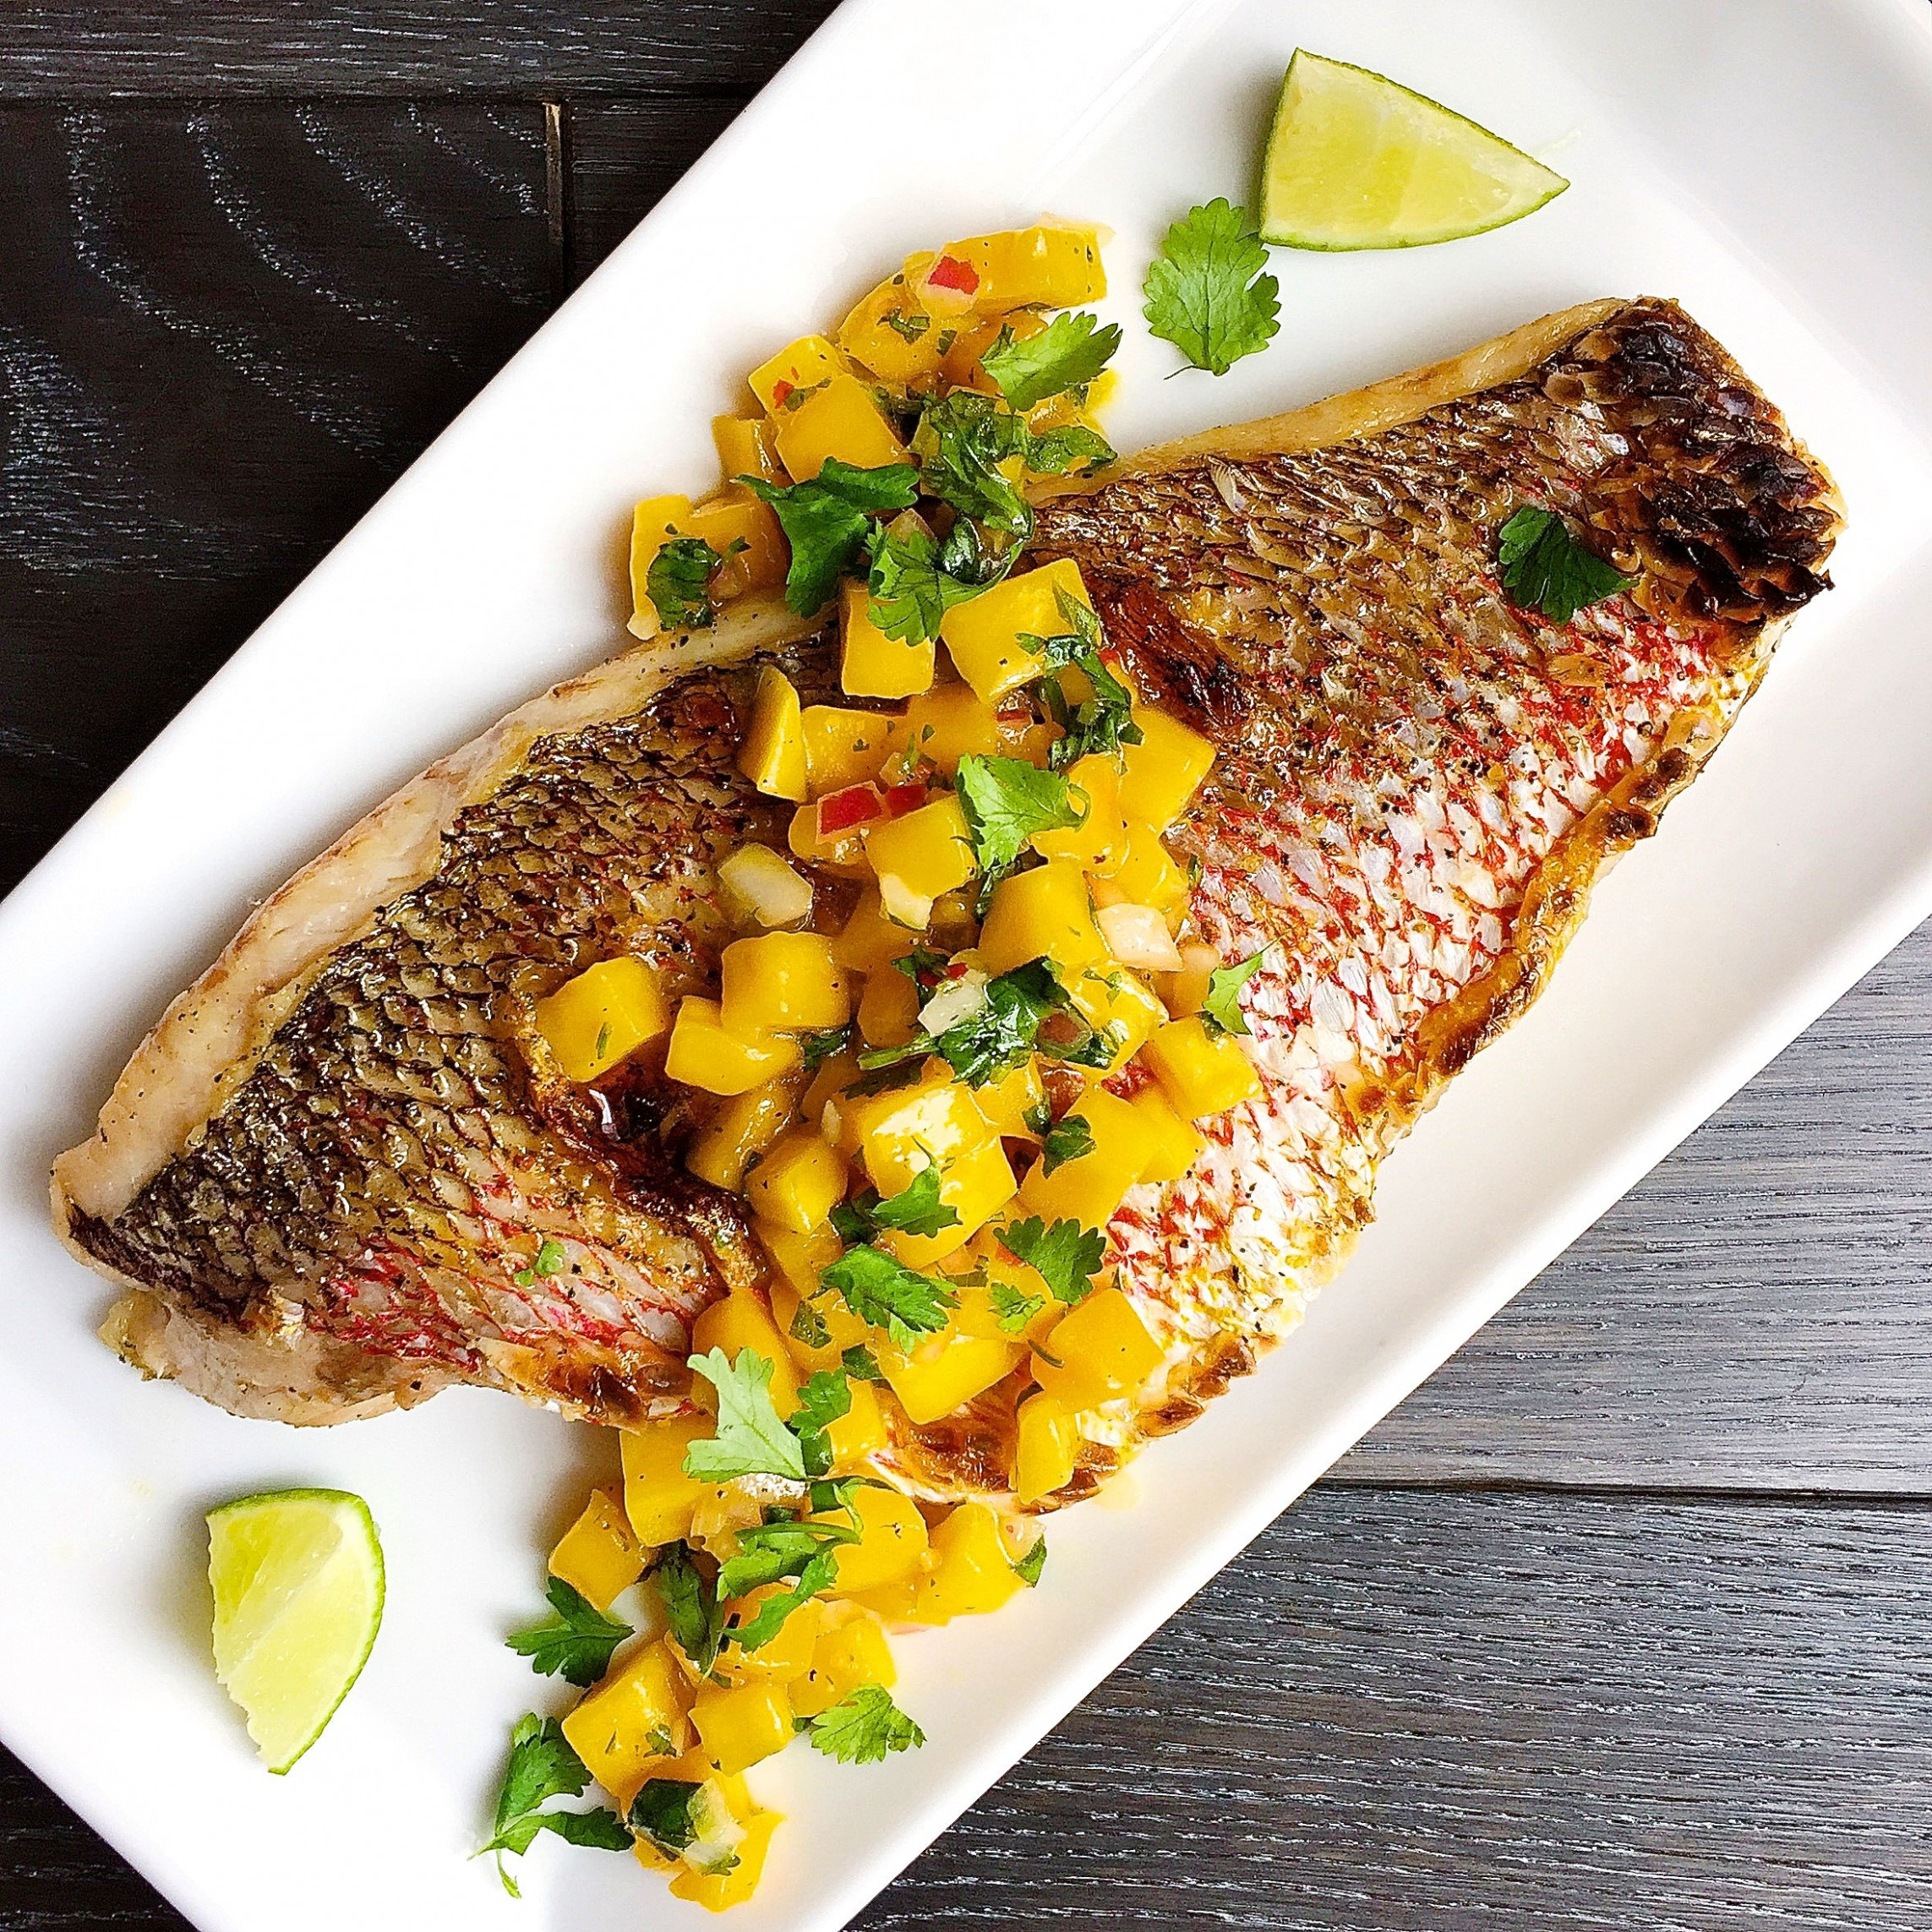 11+ Healthy Seafood Recipes - Easy Light Fish Recipes